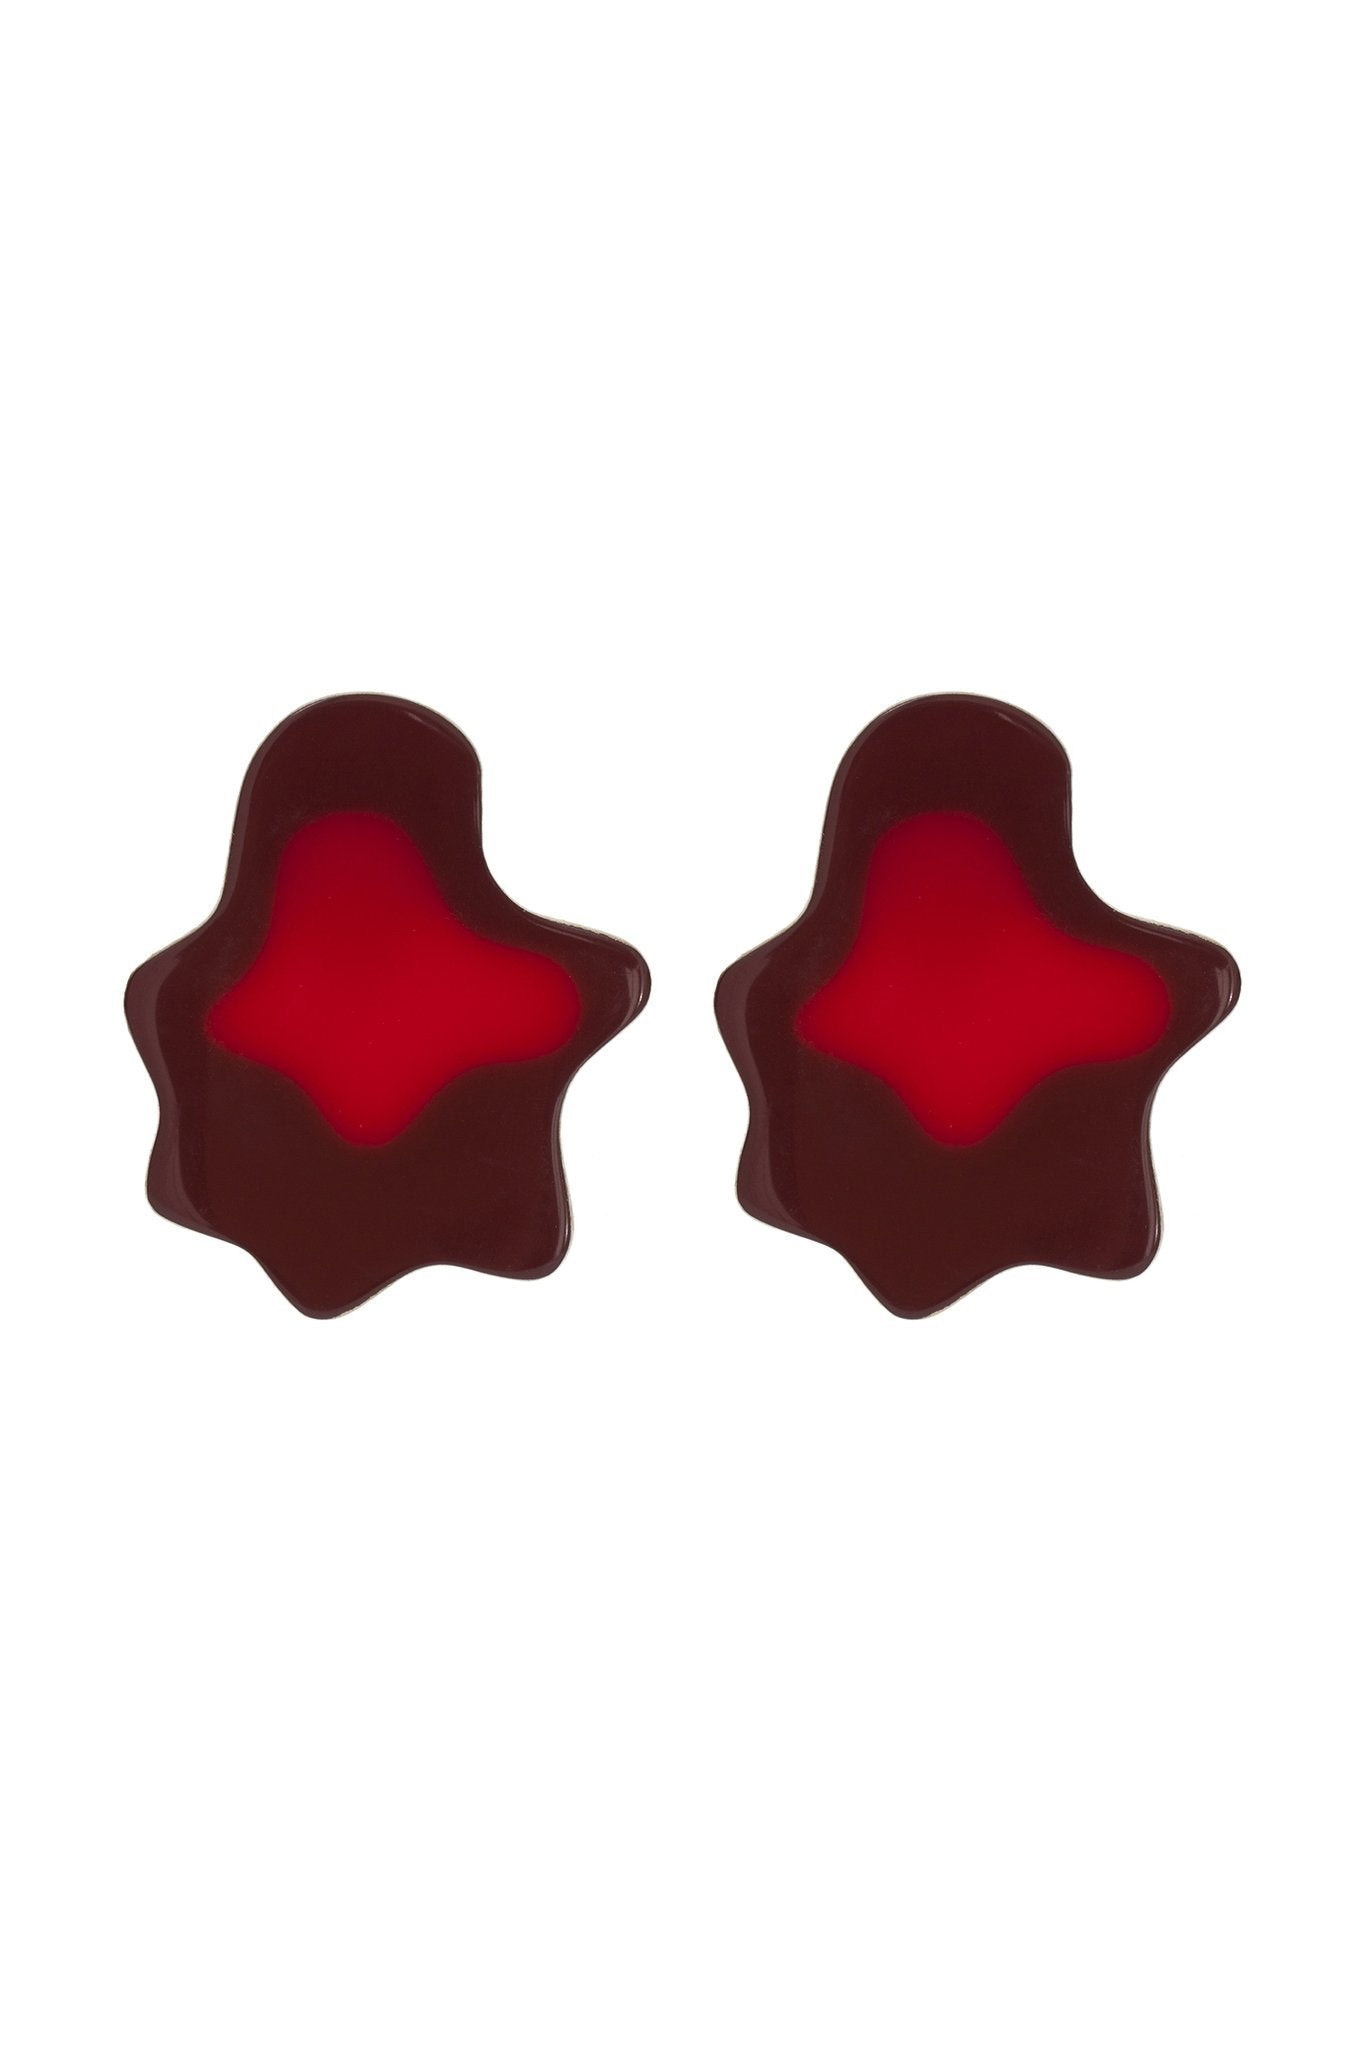 Red Topographic Earrings